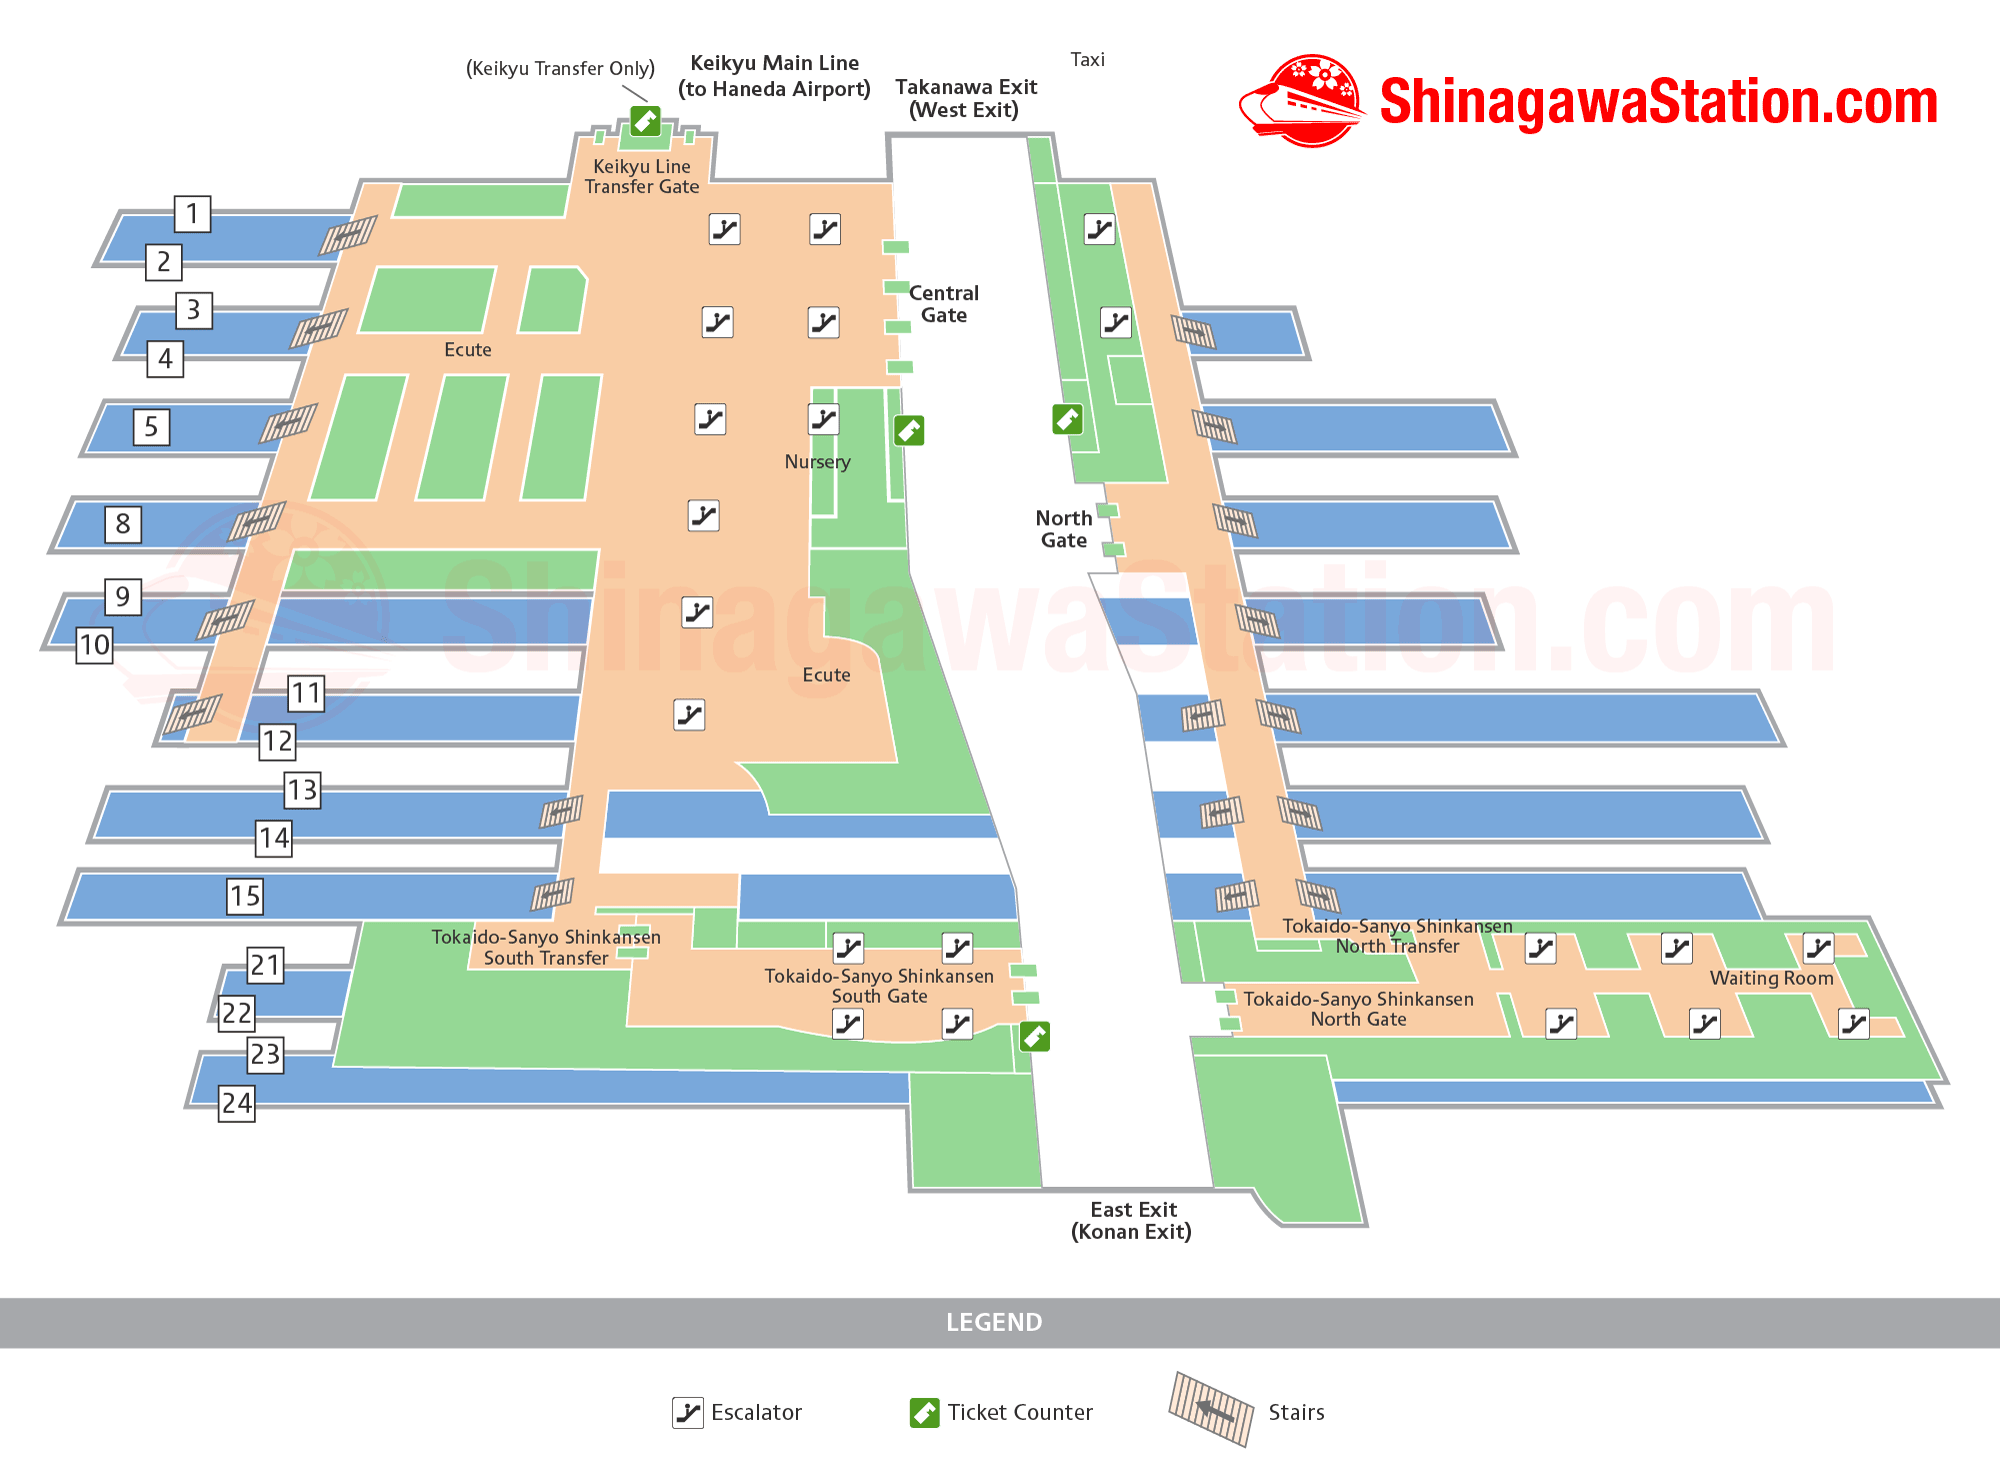 Shinagawa Station Map – Finding Your Way – Shinagawa Station on